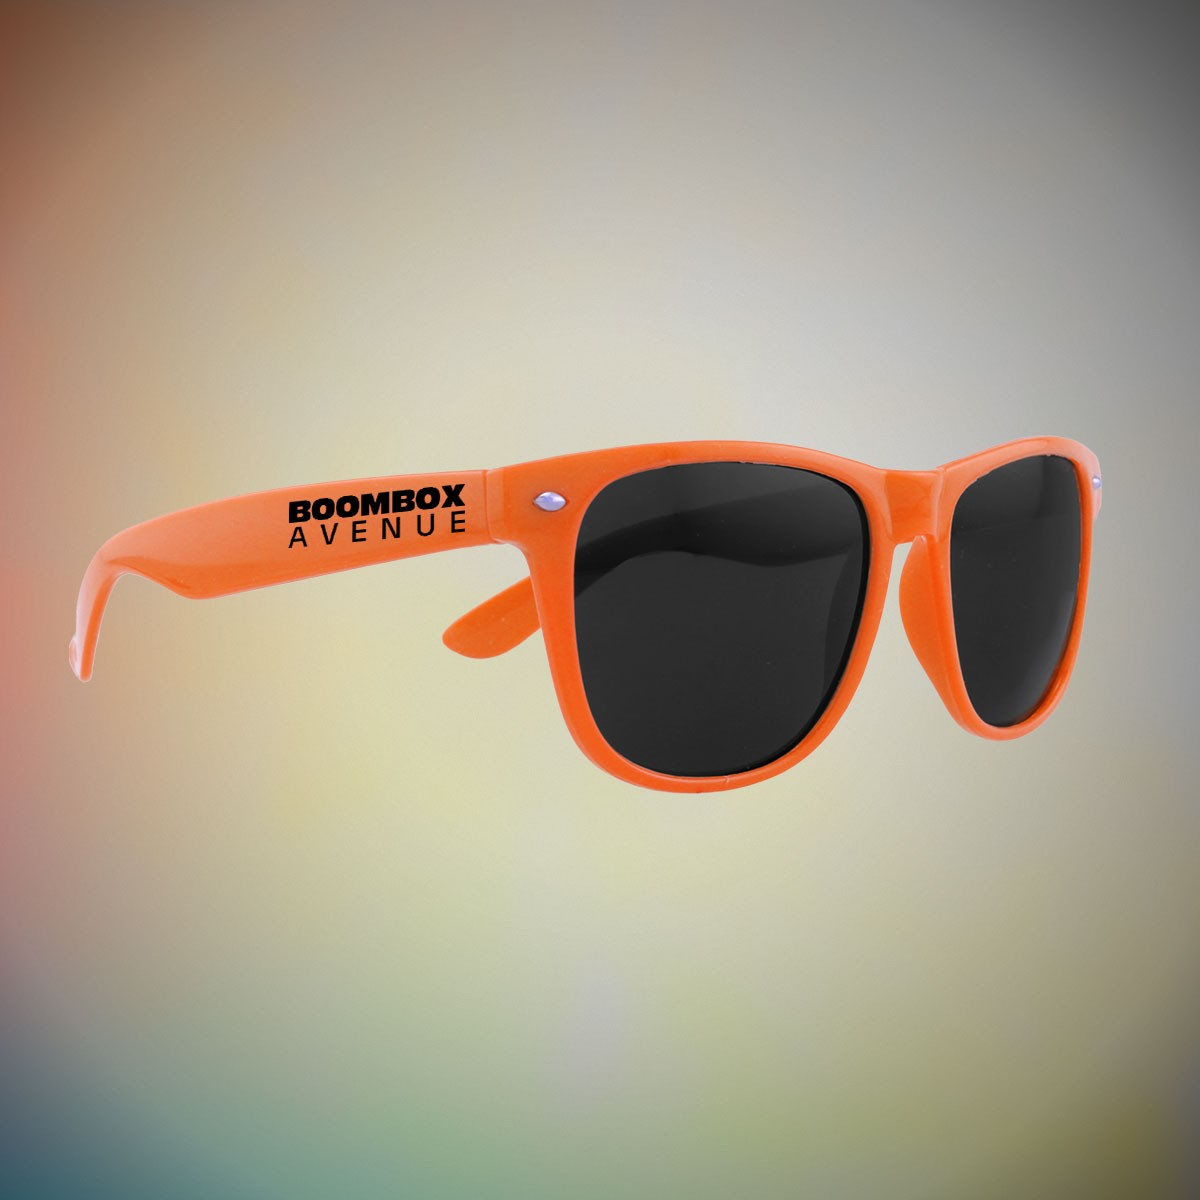 ORANGE FRAME RETRO SUNGLASSES